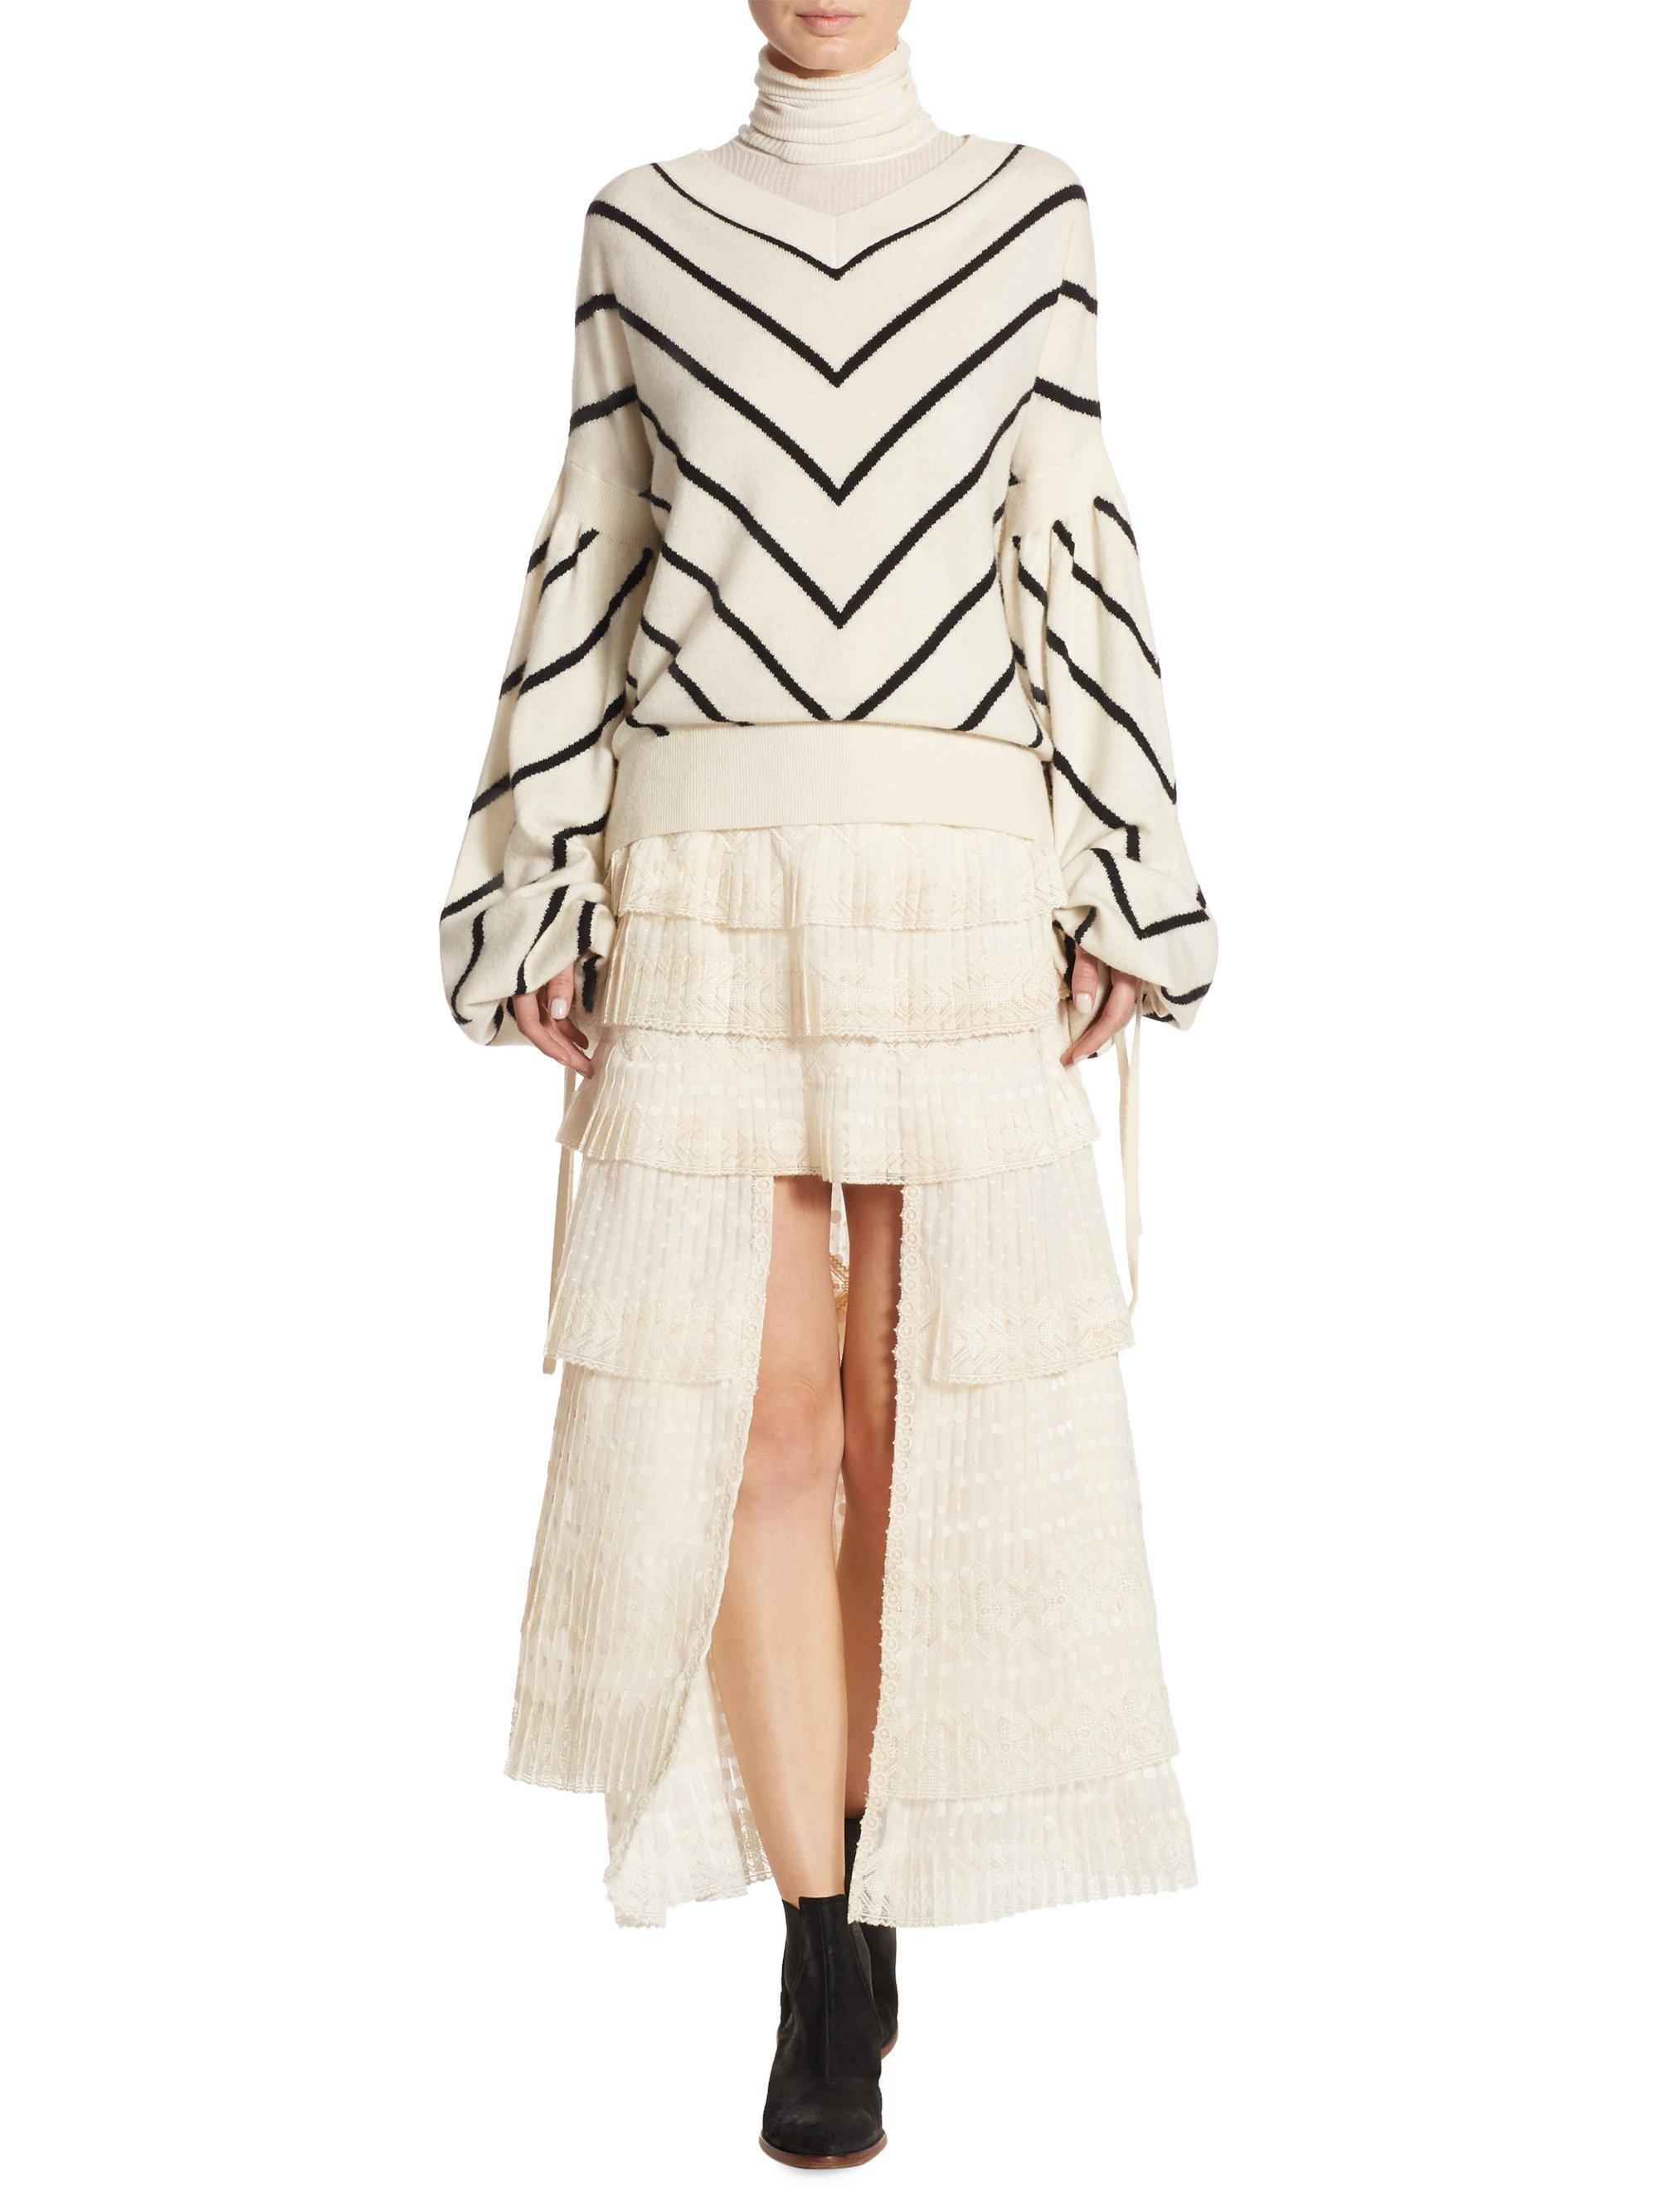 a5ad9d6e33d Zimmermann Louche Striped Sweater in Natural - Lyst